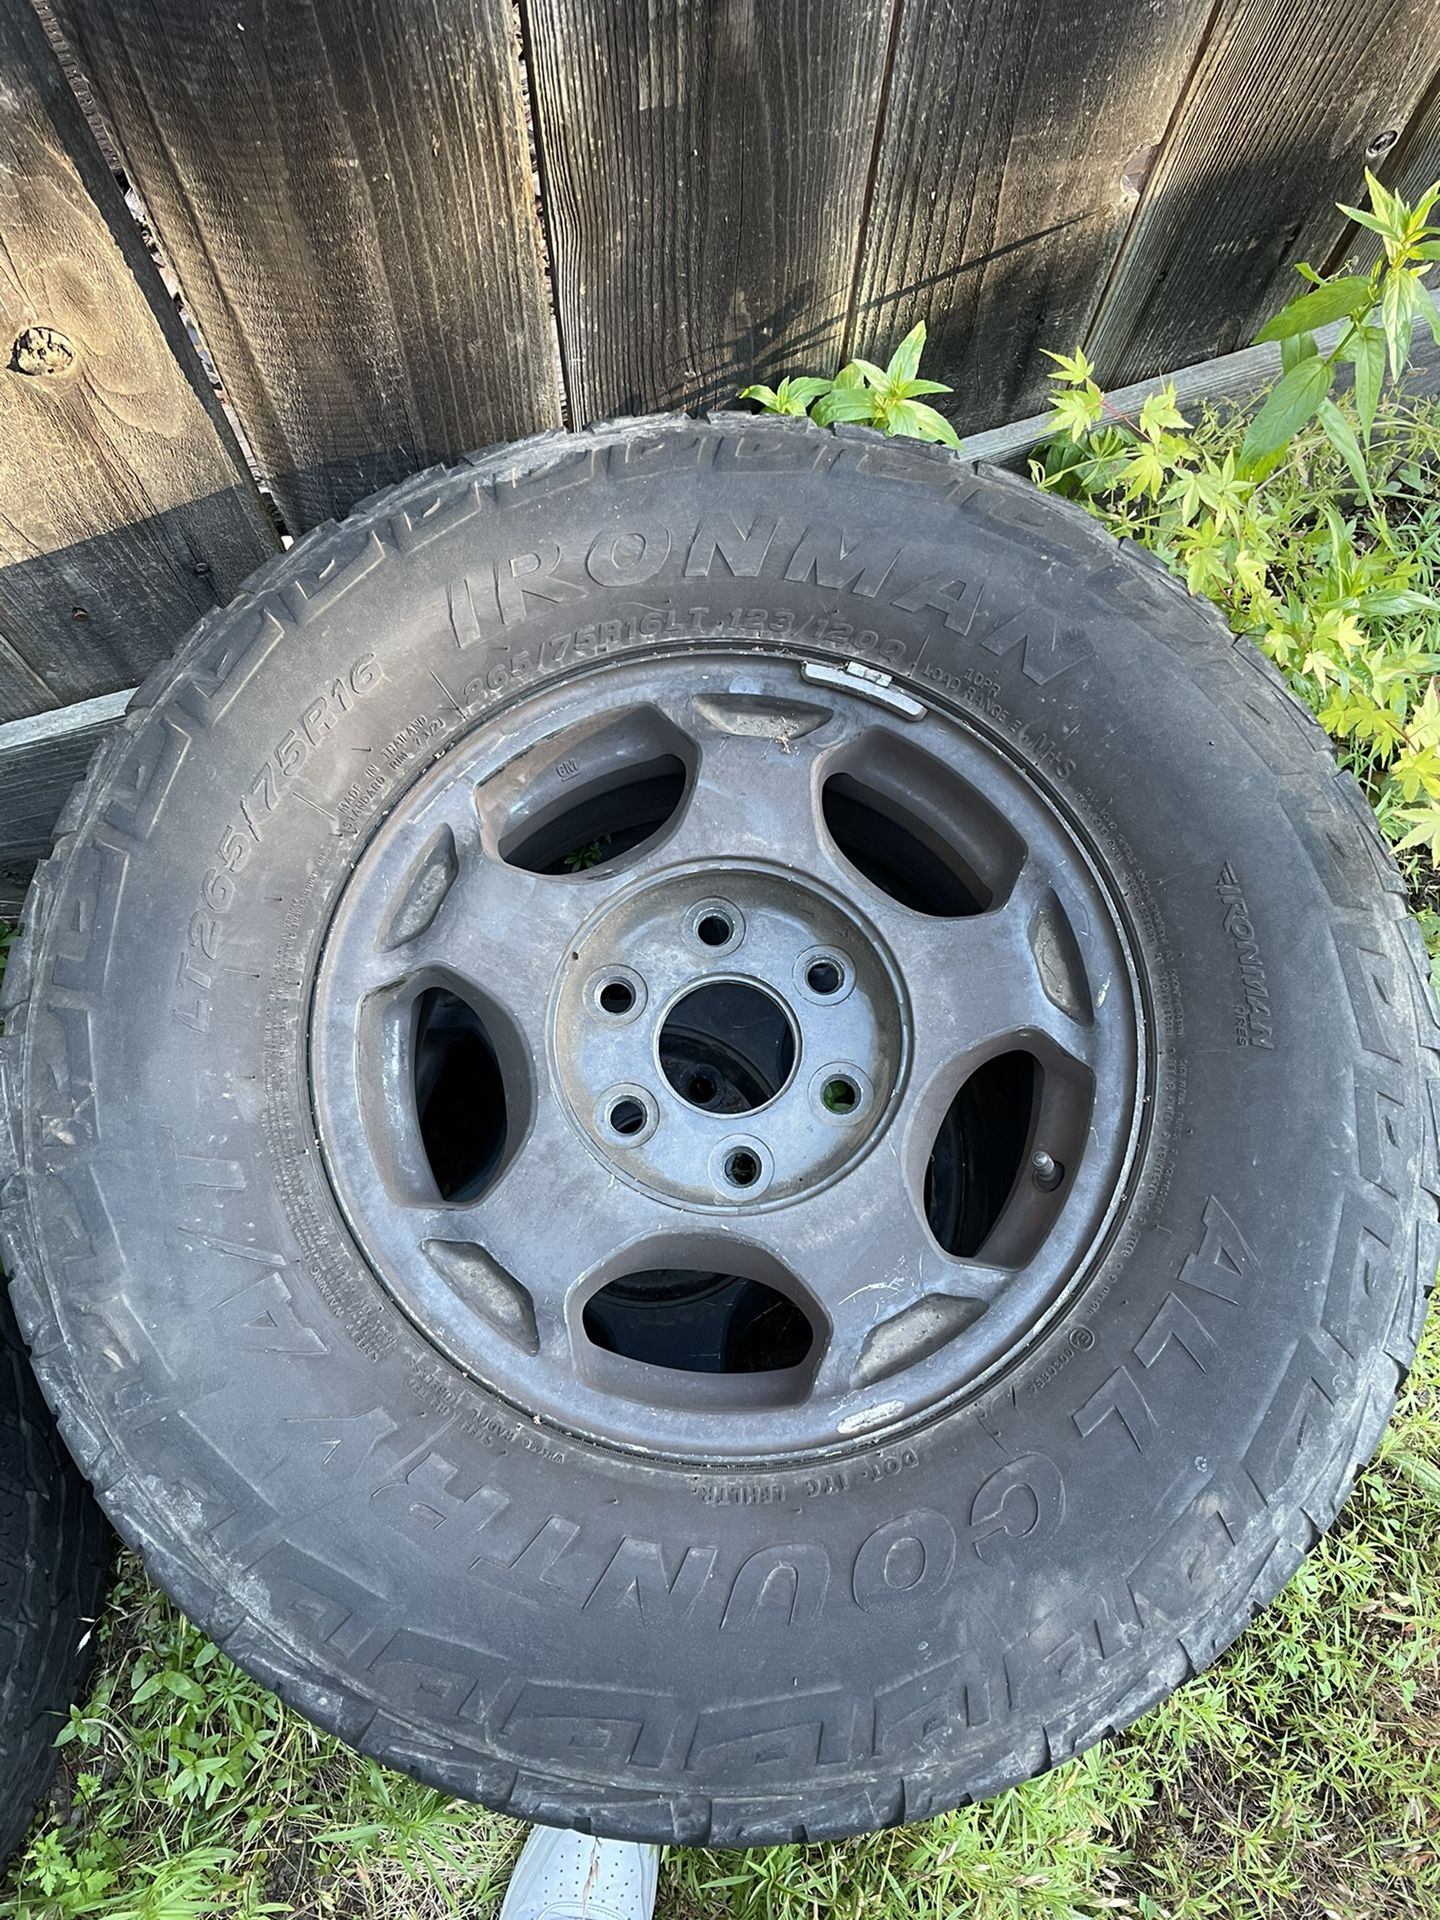 Selling Tires And Rims, Lmk 400 For The Set Of 4, Need It Gone ASAP! Wheels Were Once On A Chevy Silverado 1500